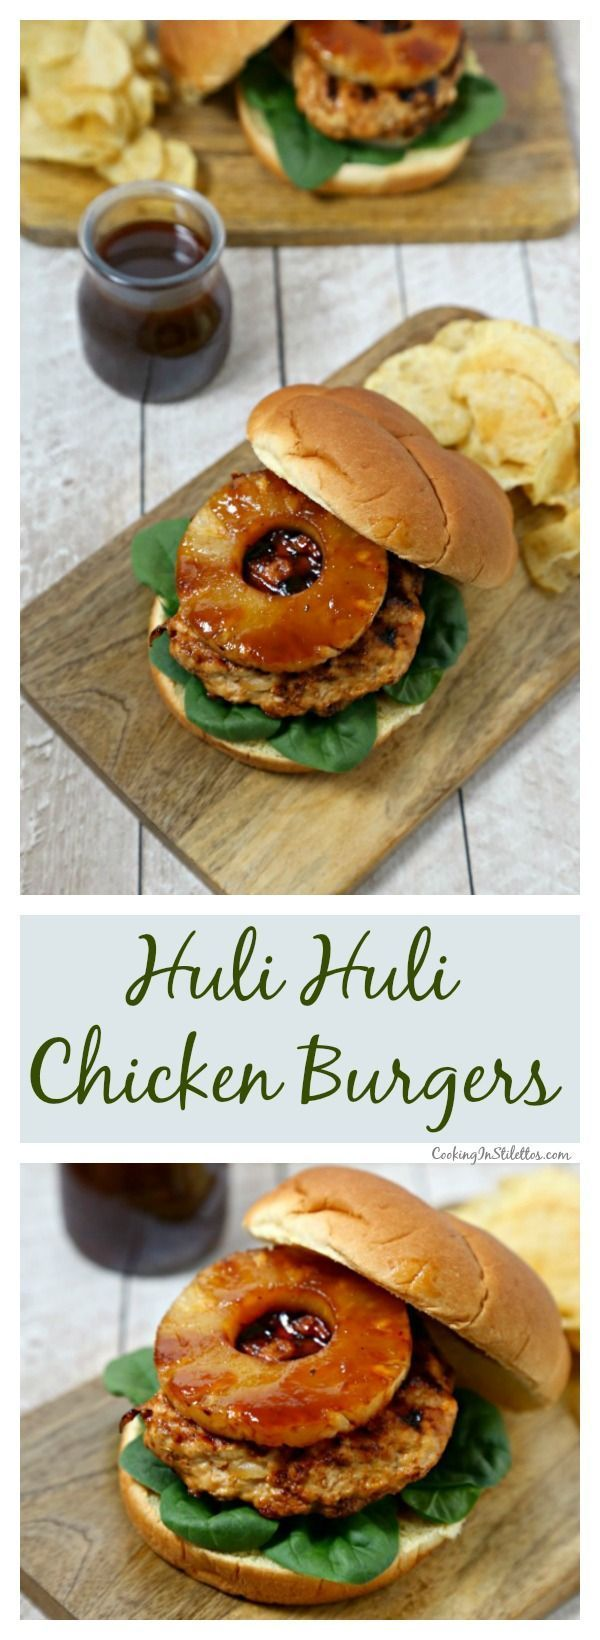 For an island twist, make these delicious Huli Huli Chicken Burgers from http://CookingInStilettos.com for your next cookout. Ground chicken is grilled with a sweetly spicy huli huli sauce and nestled in Pepperidge Farm Farmhouse Hearty Rustic Potato Buns with